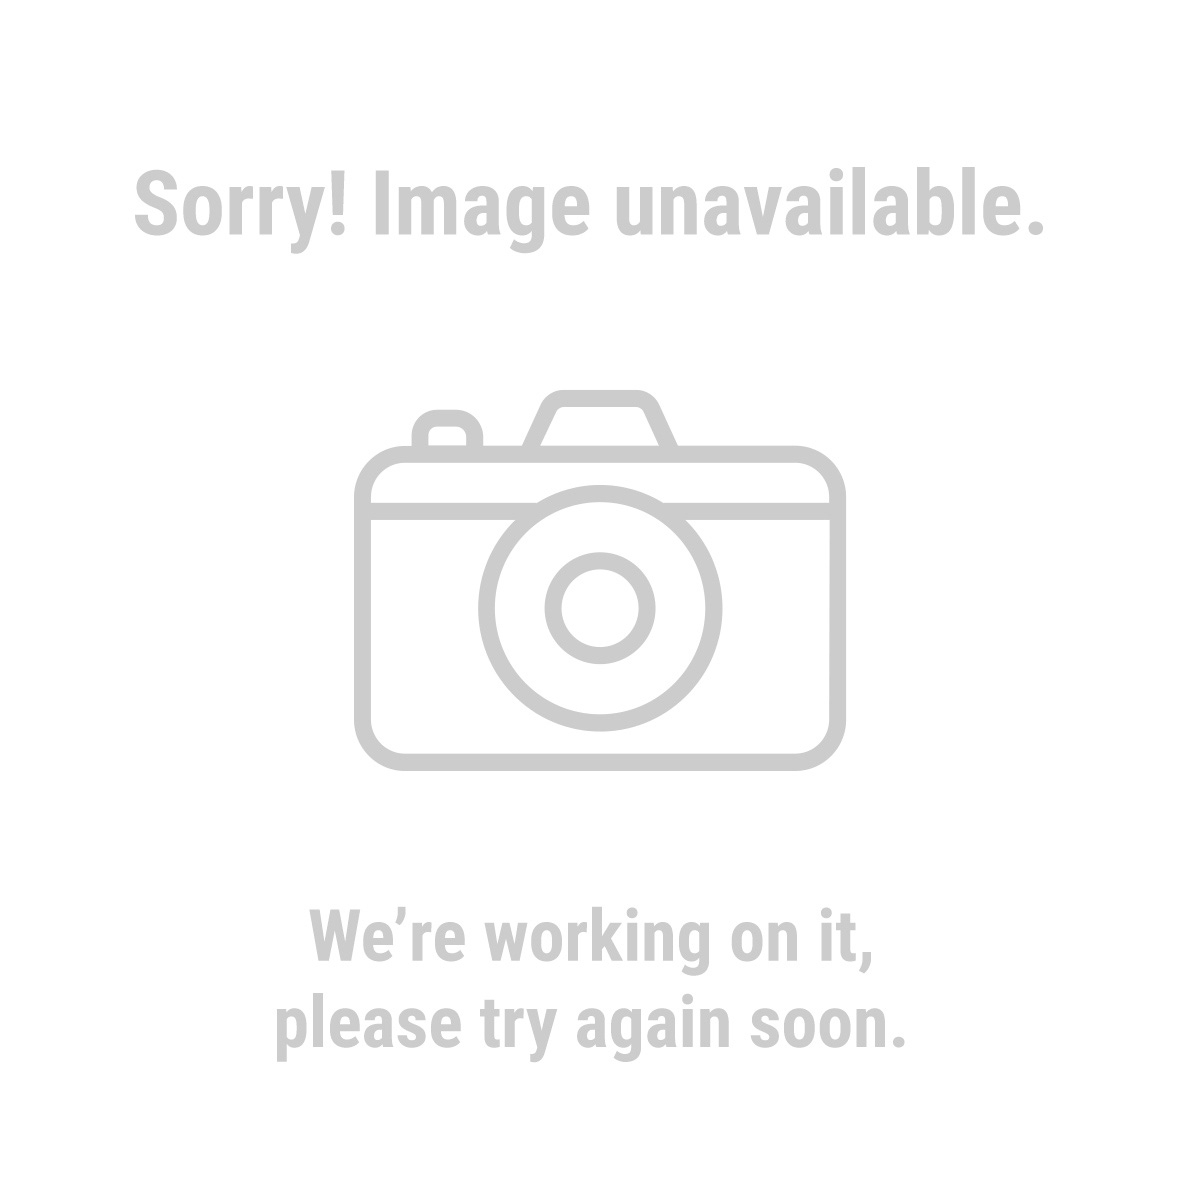 91395 6 Piece Pipe Tap & Die Set